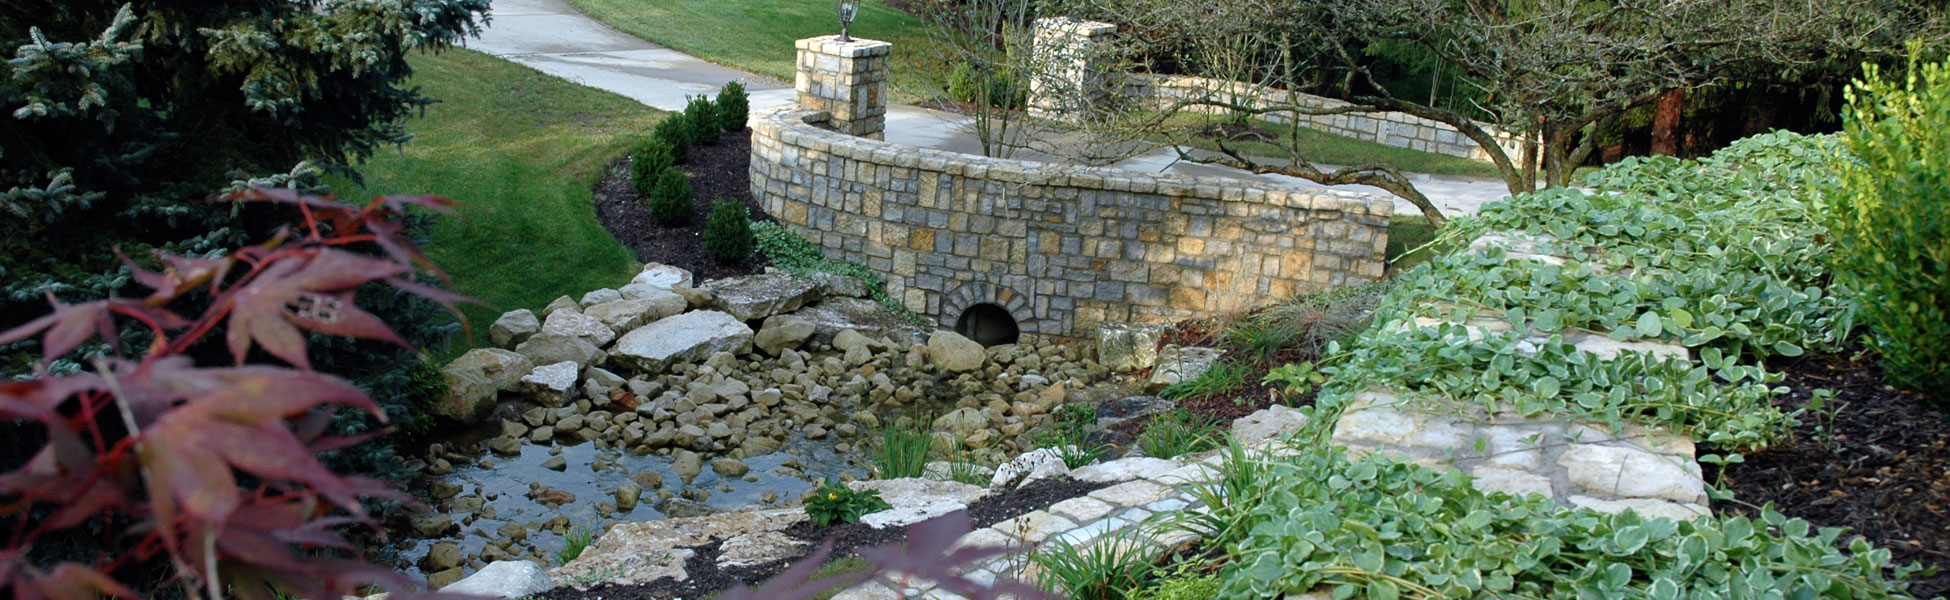 Peabody Landscape Group is the premier landscaping company in Columbus Ohio